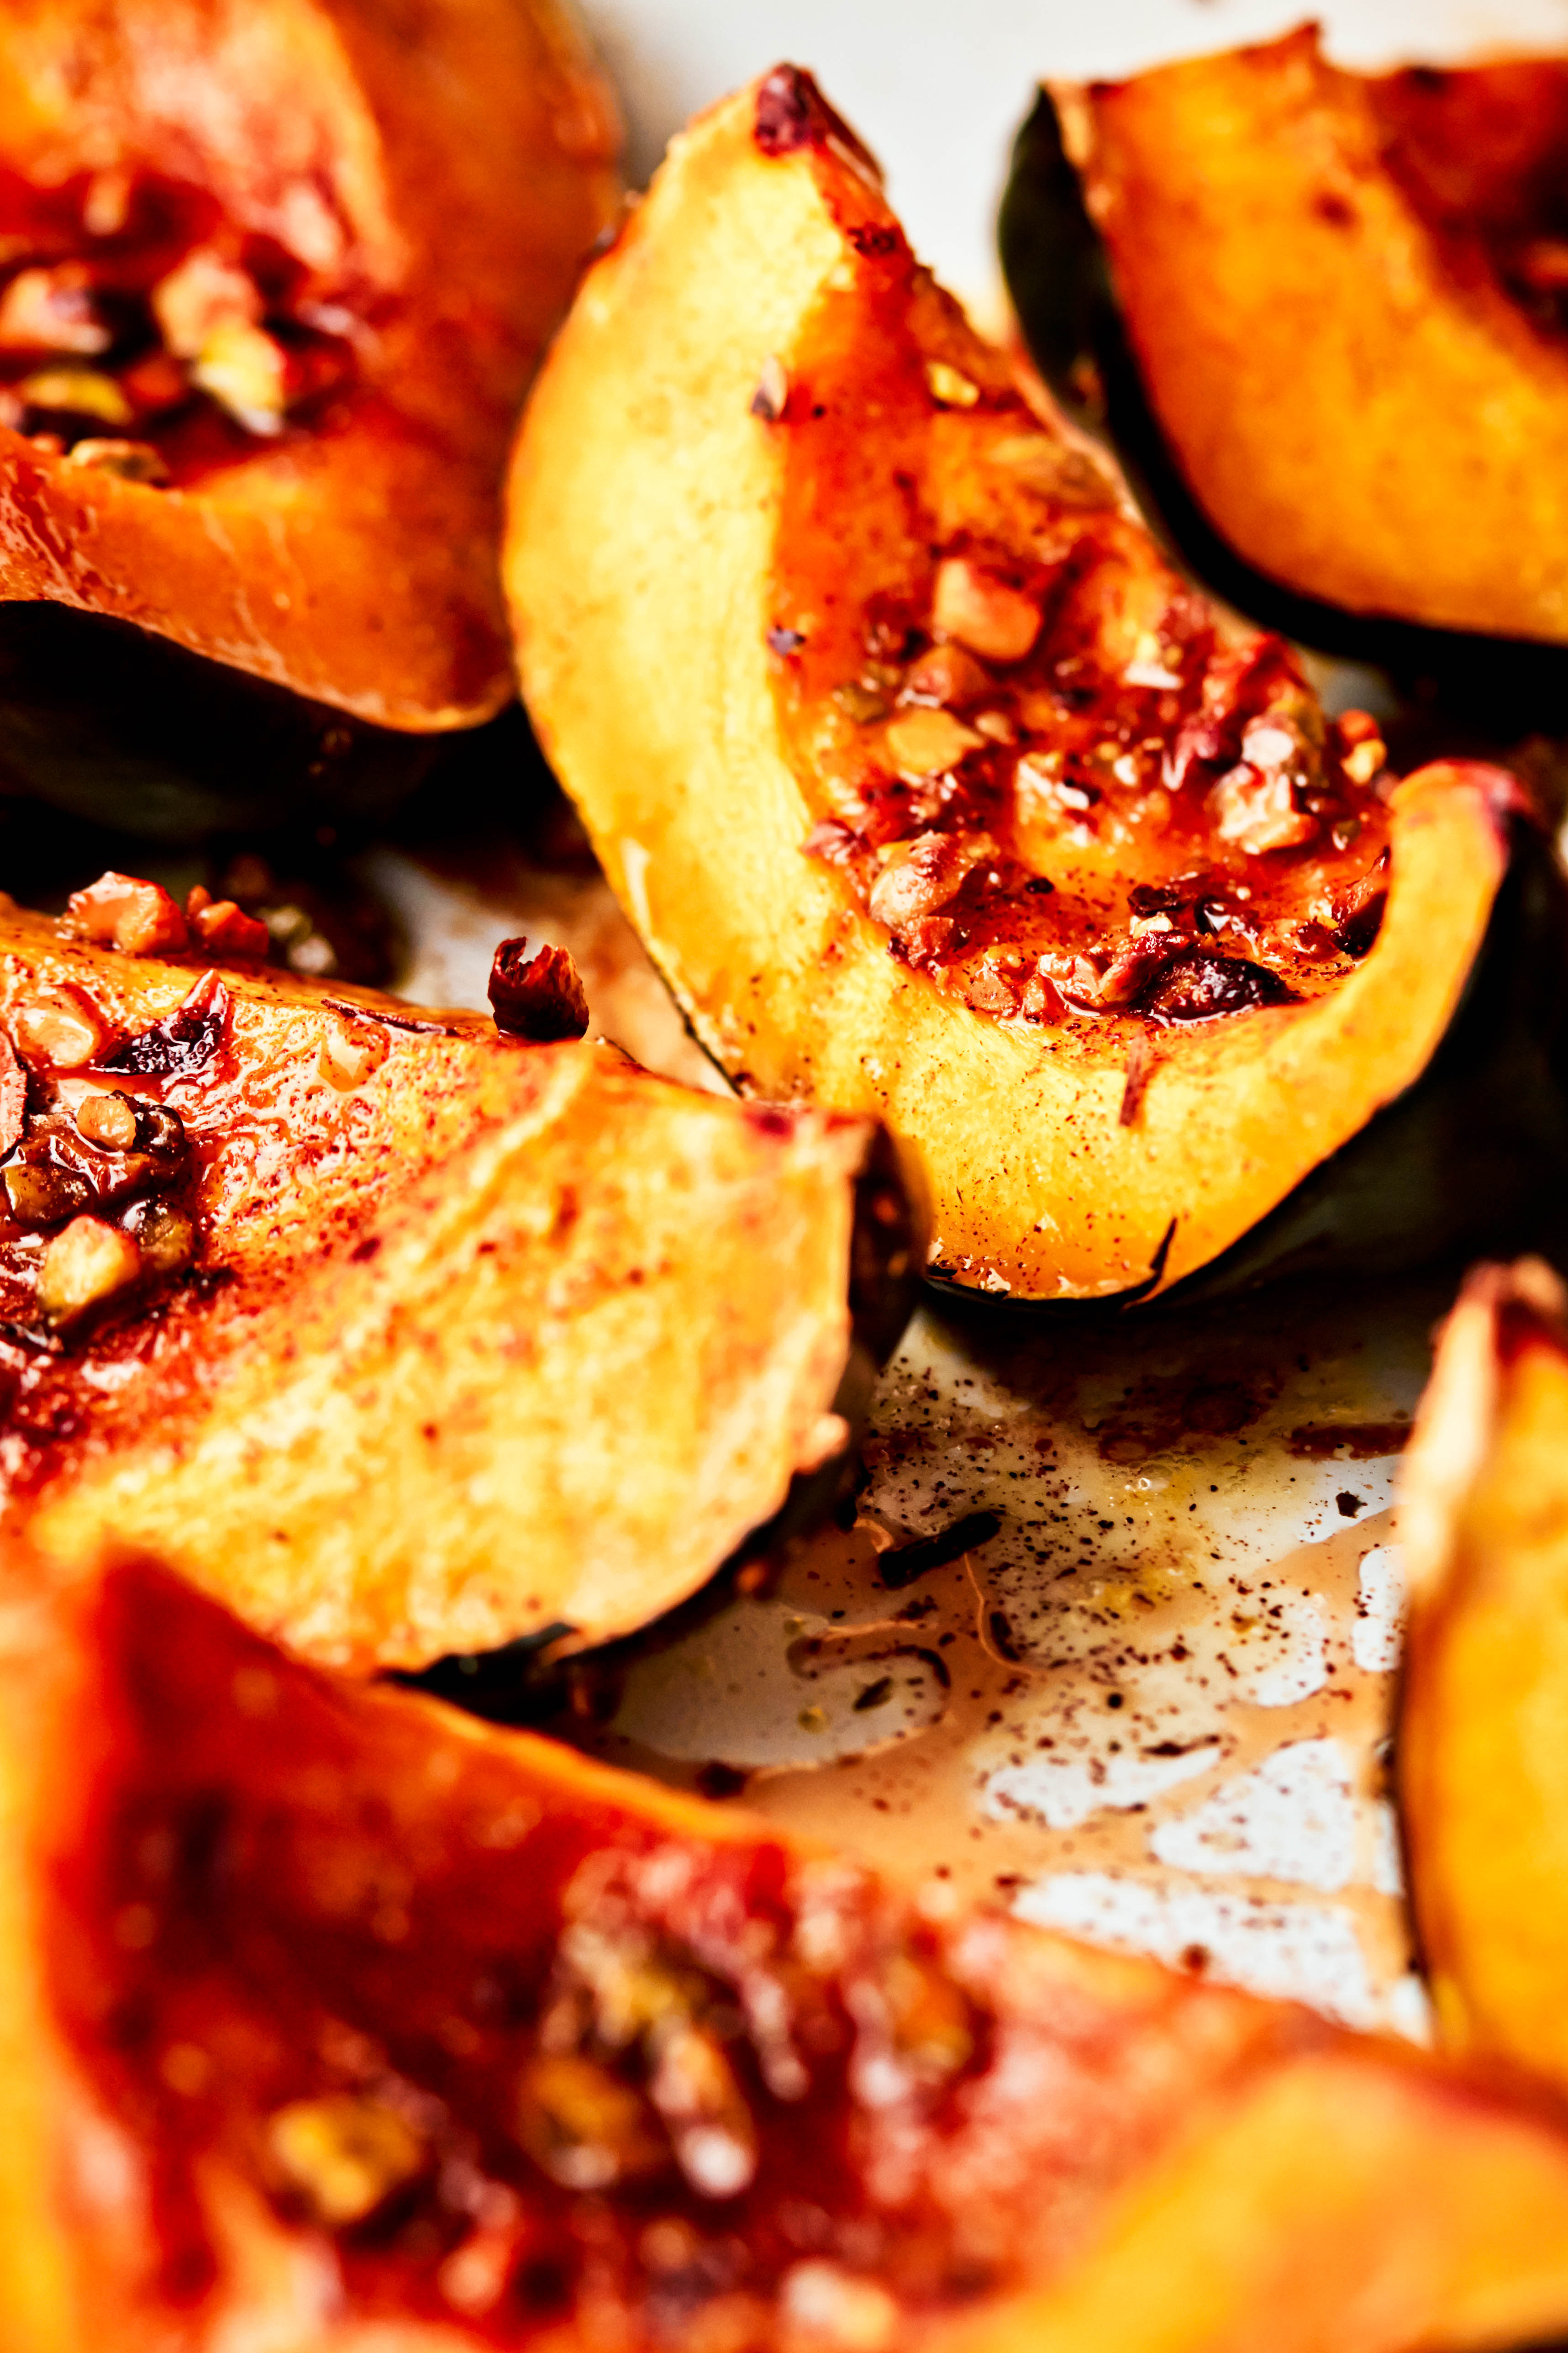 Blue Stallion Farm's roasted acorn squash